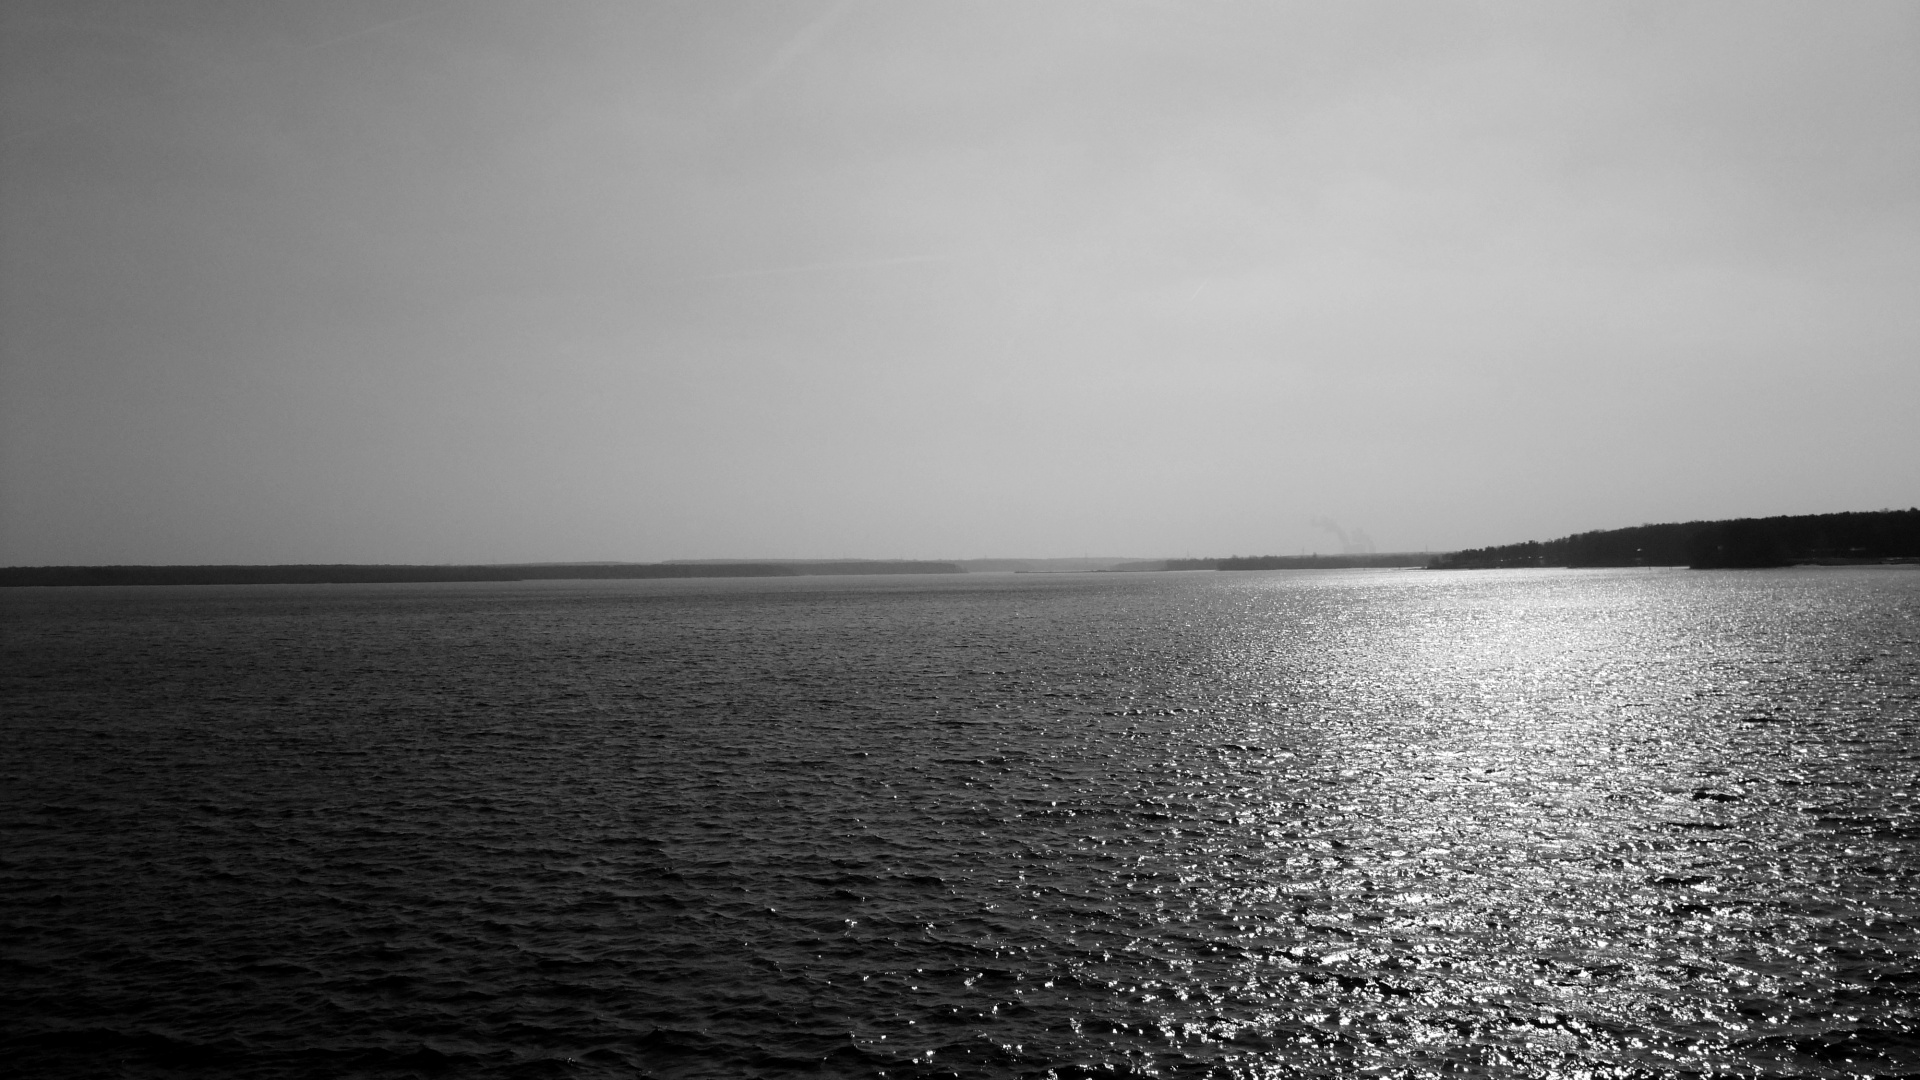 Ocean Black And White 1920x1080 Download Hd Wallpaper Wallpapertip